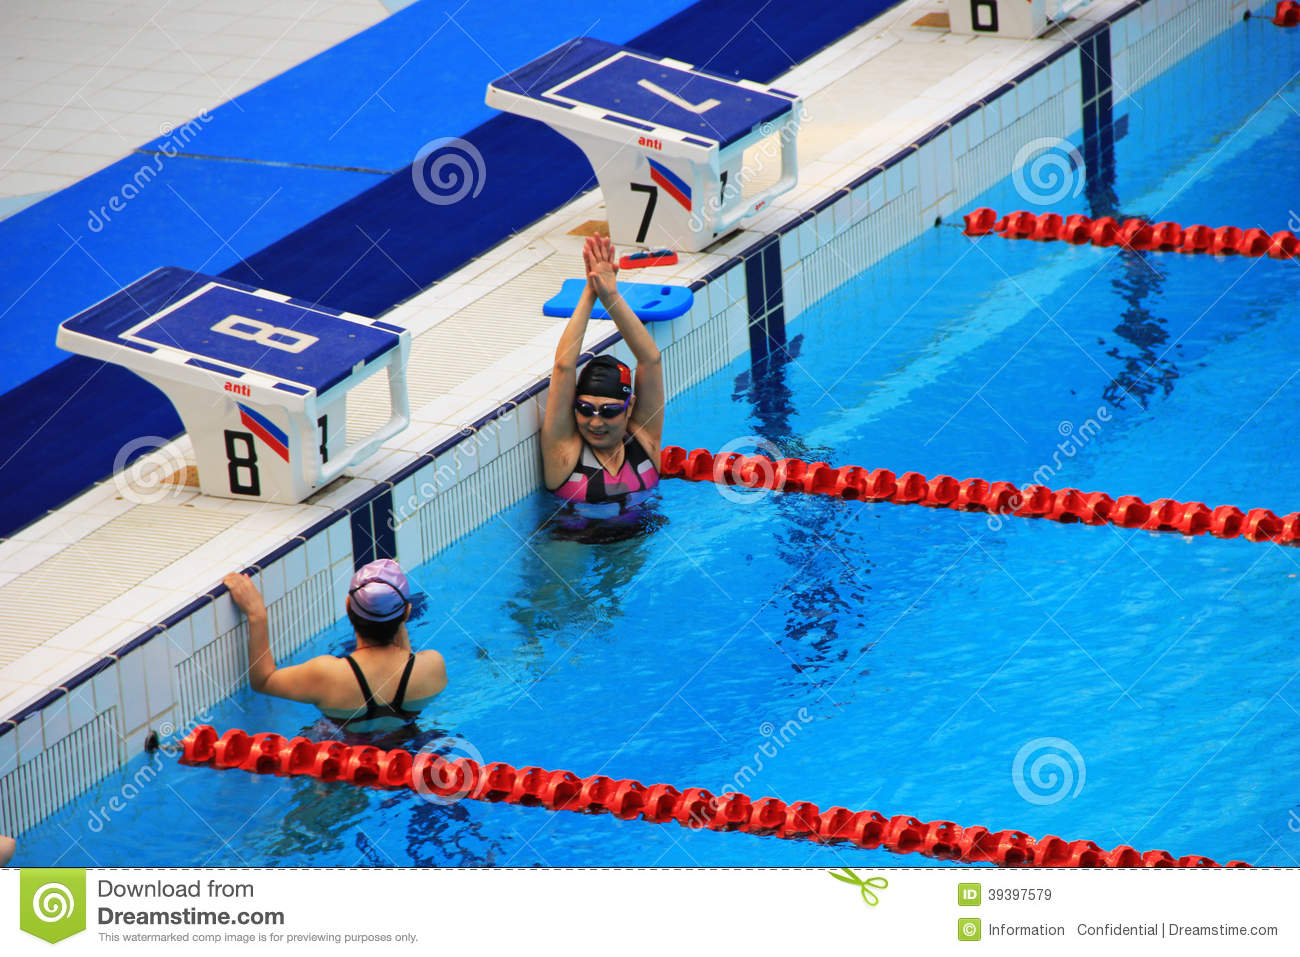 Beijing 2008 olympic swimming pool stock photos 67 images for Beijing swimming pool olympics